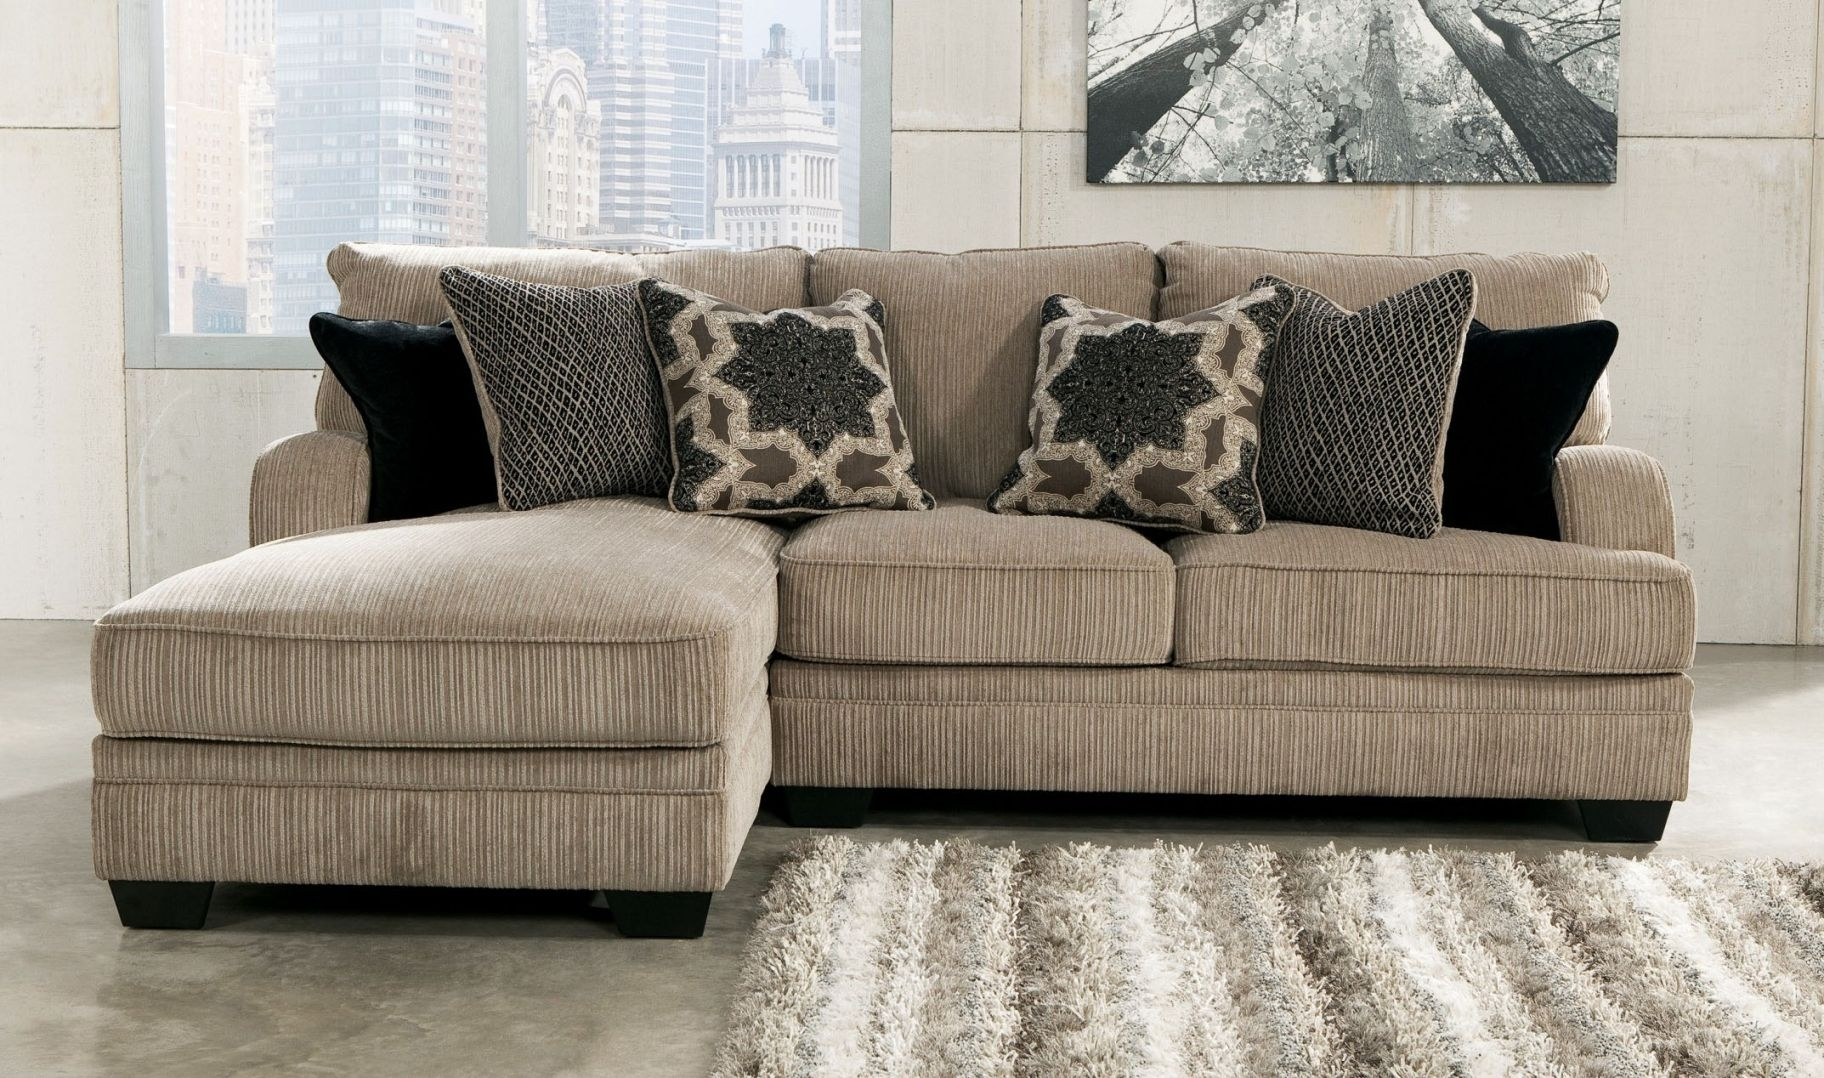 Small Sectional Sofa With Chaise And Ottoman In Small Sectional Sofas With Chaise And Ottoman (Image 6 of 10)